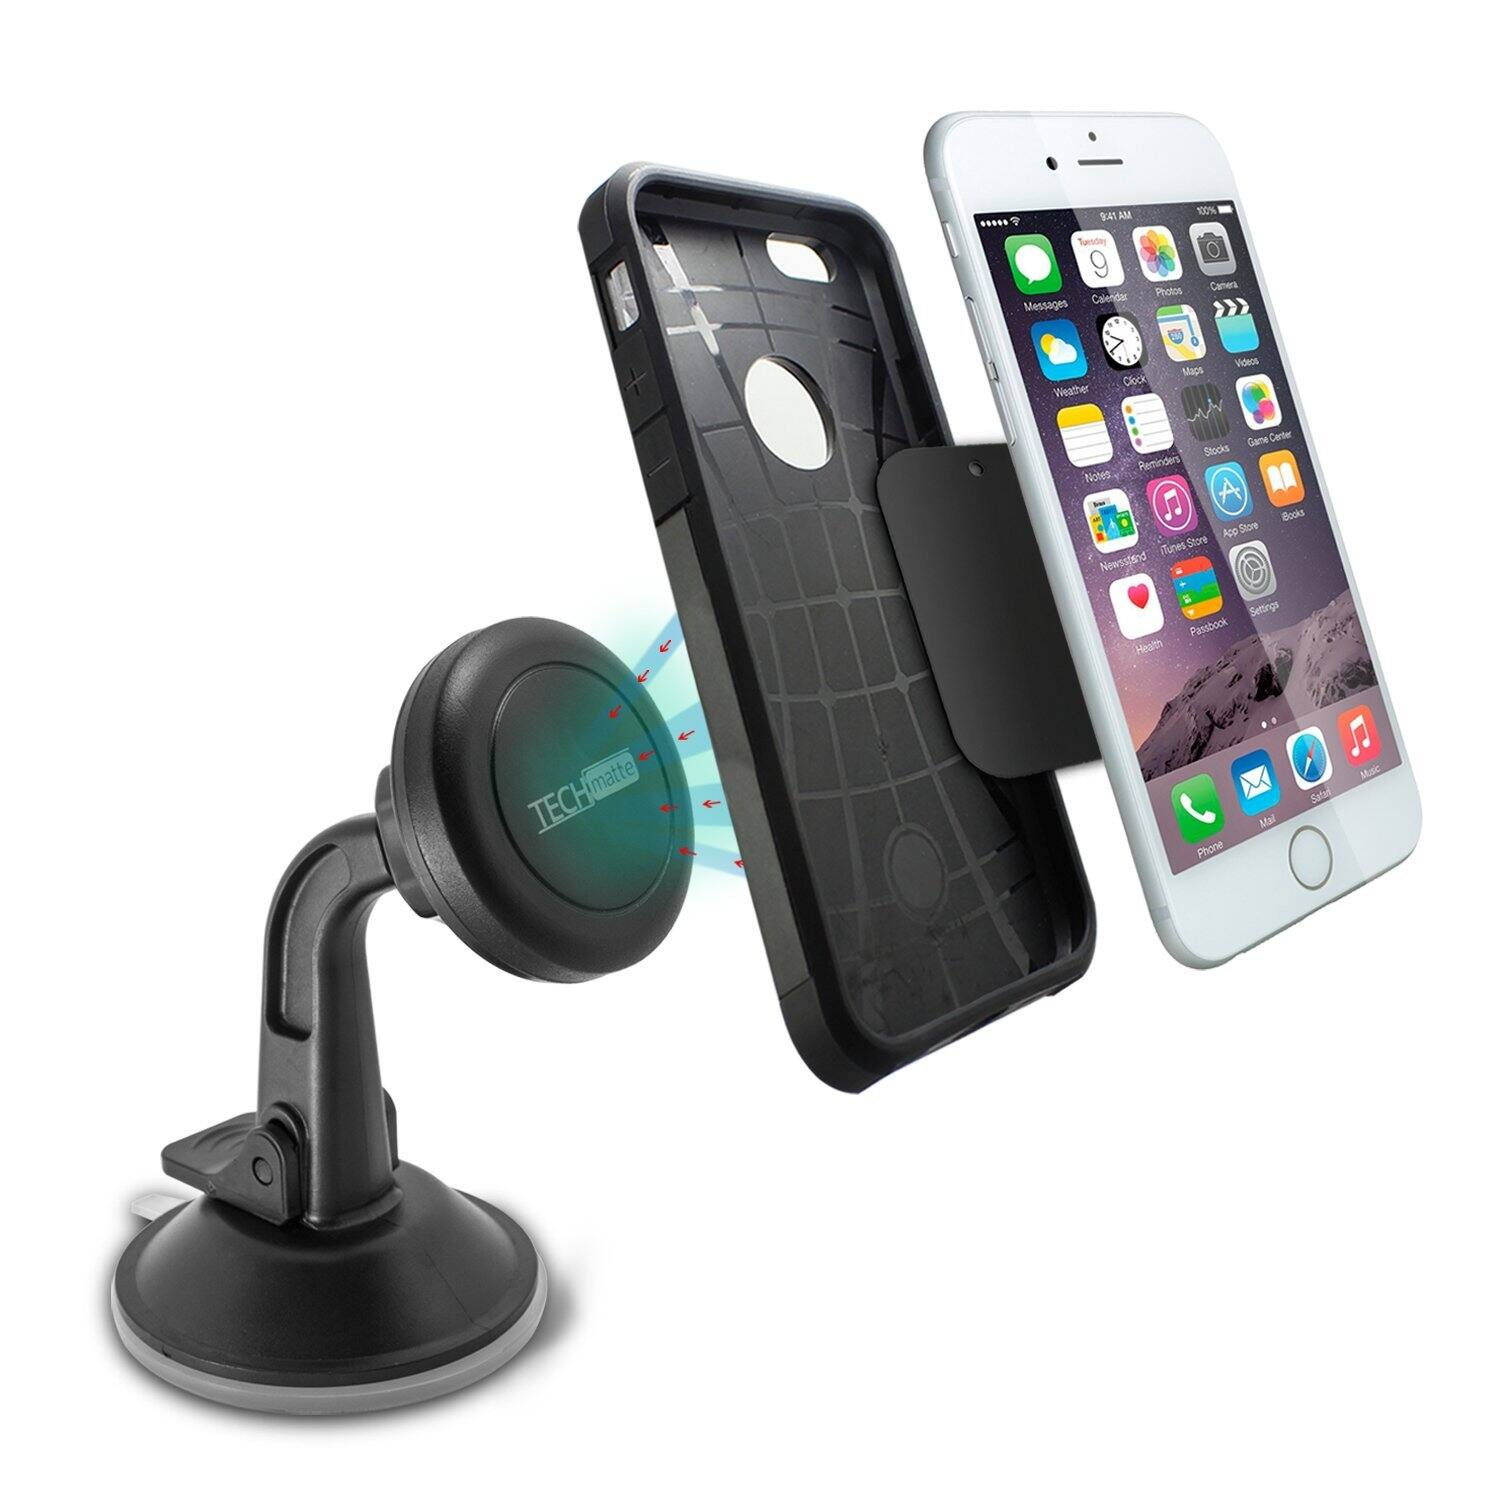 TechMatte MagGrip Dashboard Car Mount Holder for Smartphones  $2 + Free Shipping